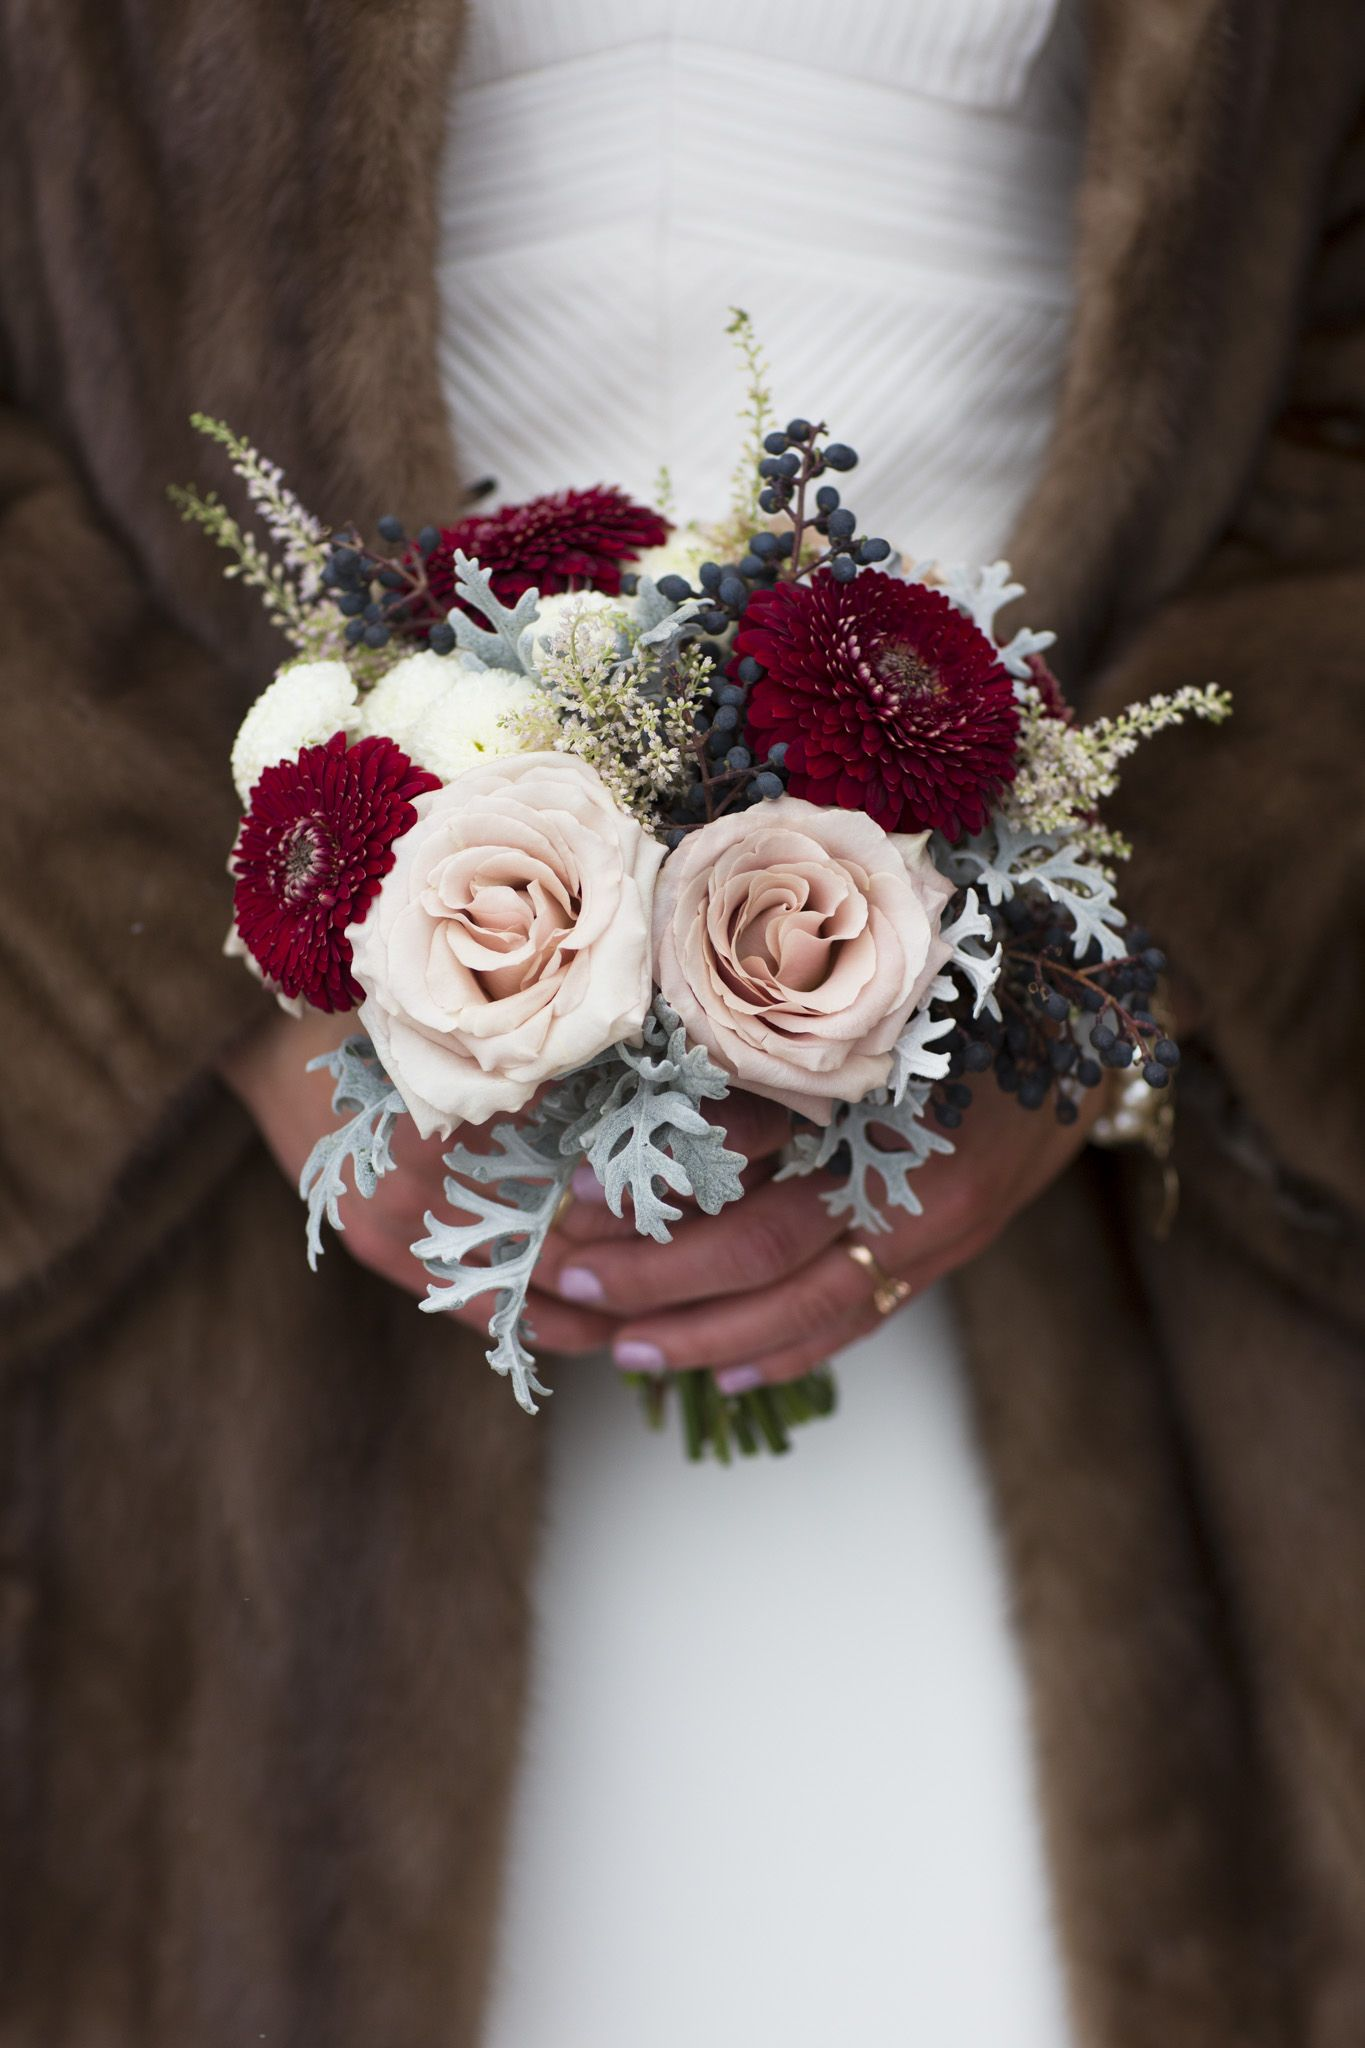 Wedding decorations at church january 2019 Winter bridal posy with Quicksand roses viburnum berries astilbe